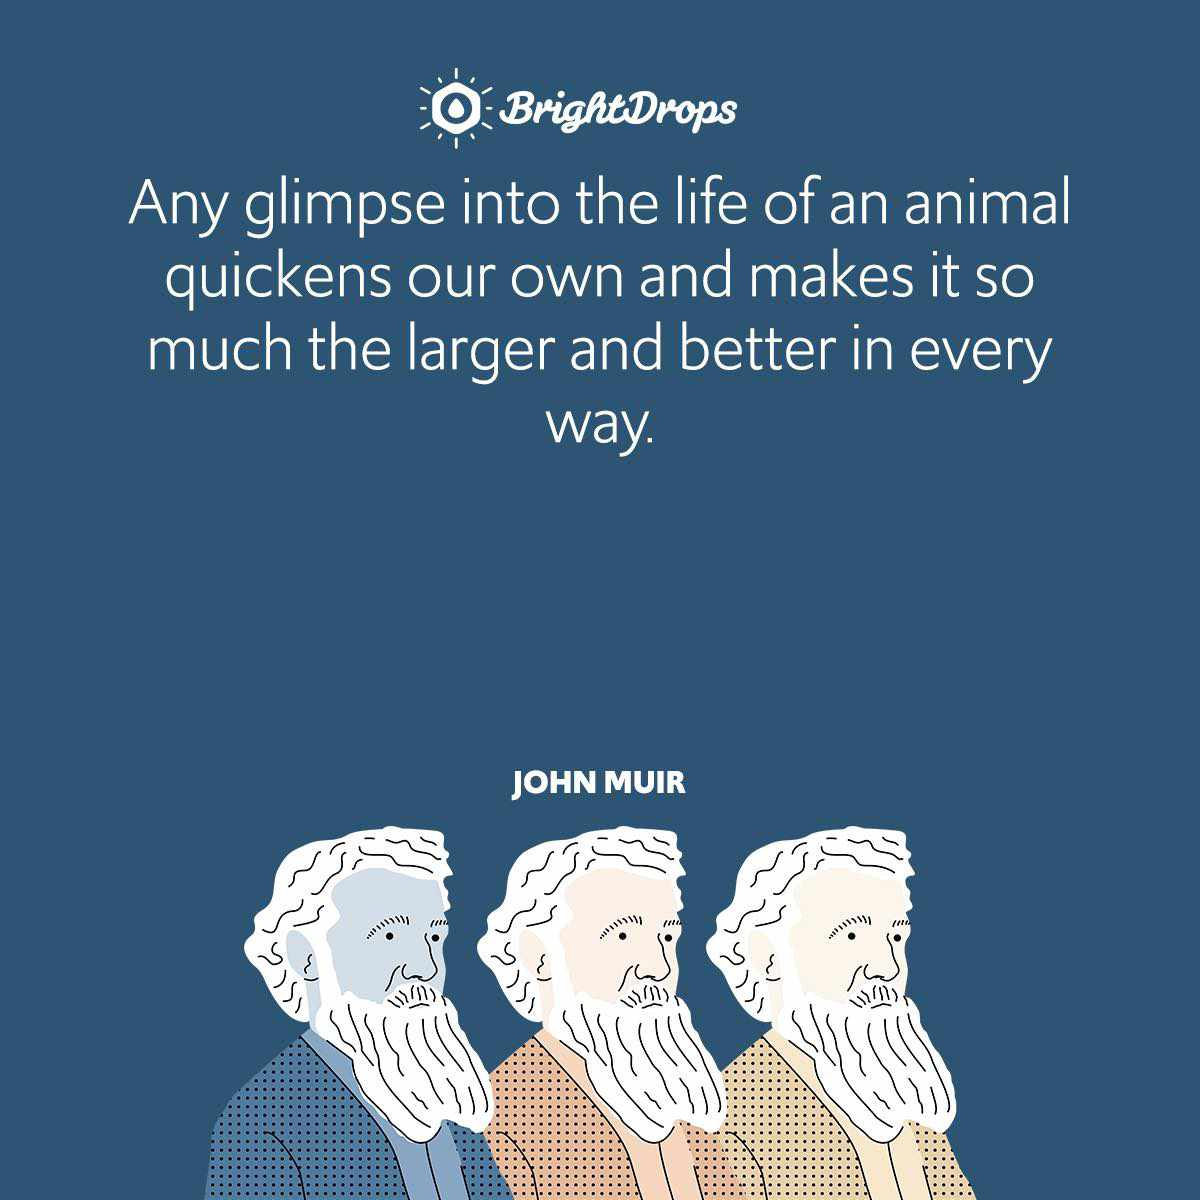 Any glimpse into the life of an animal quickens our own and makes it so much the larger and better in every way.